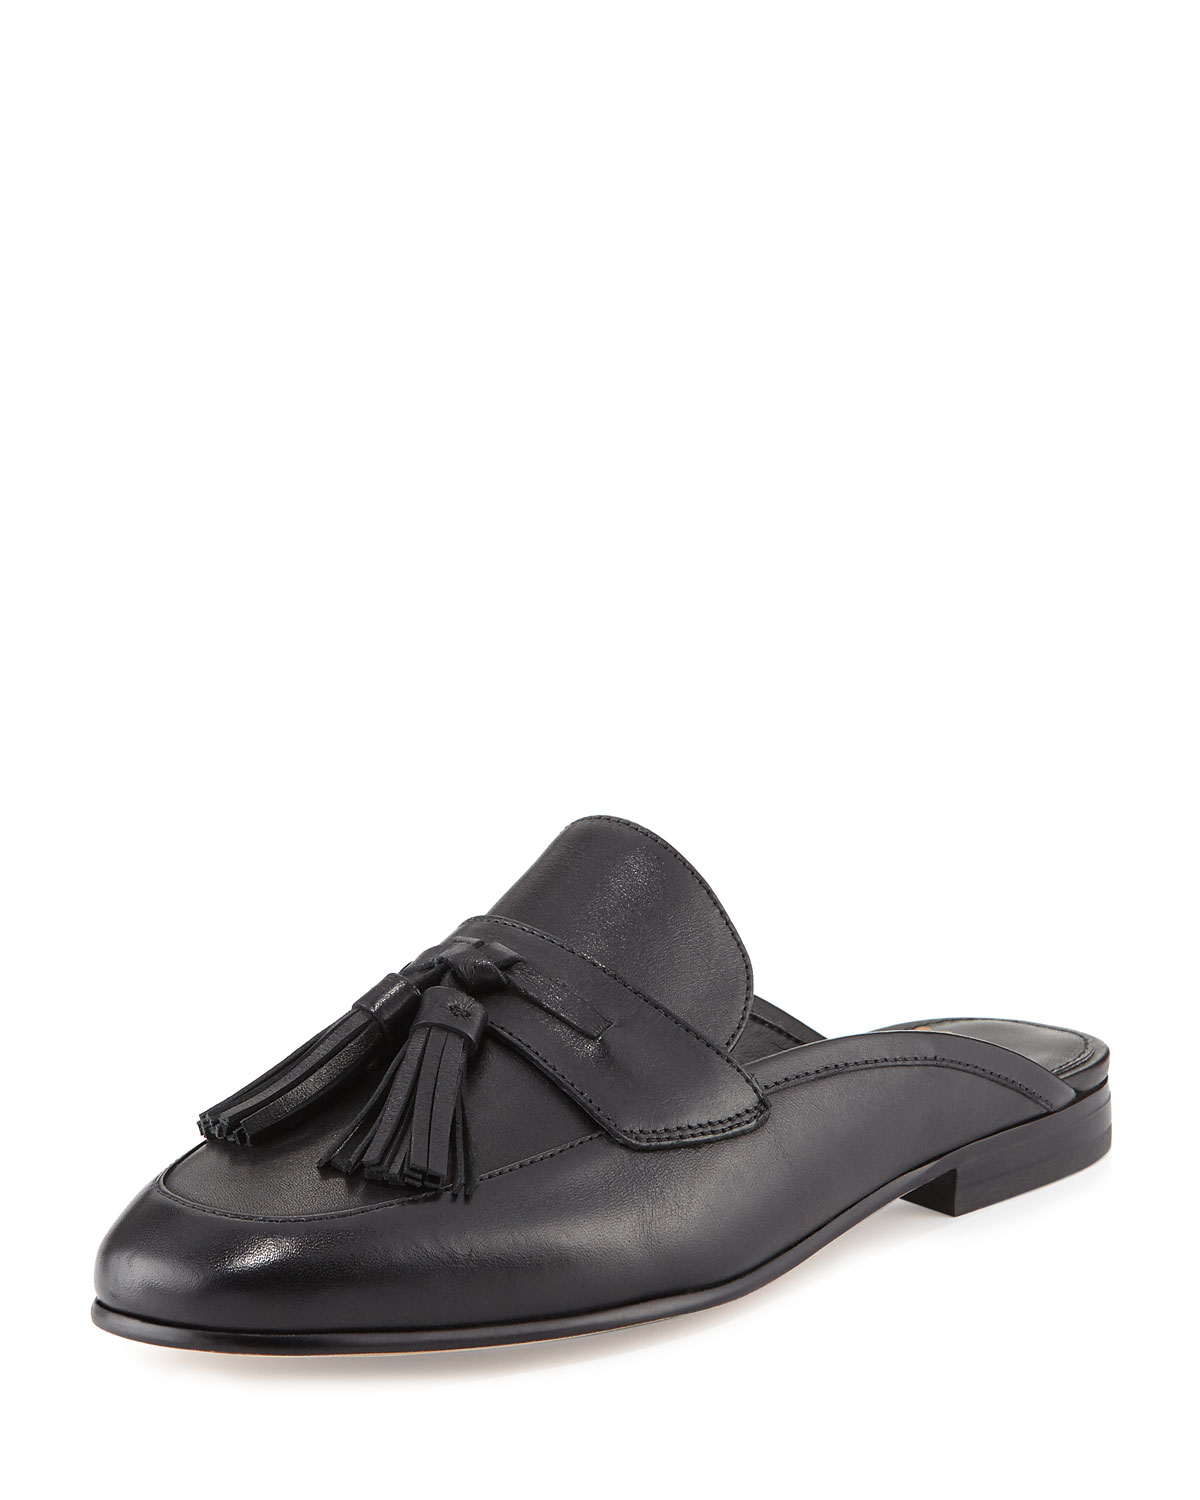 Leather Mule Shoes With Tassels